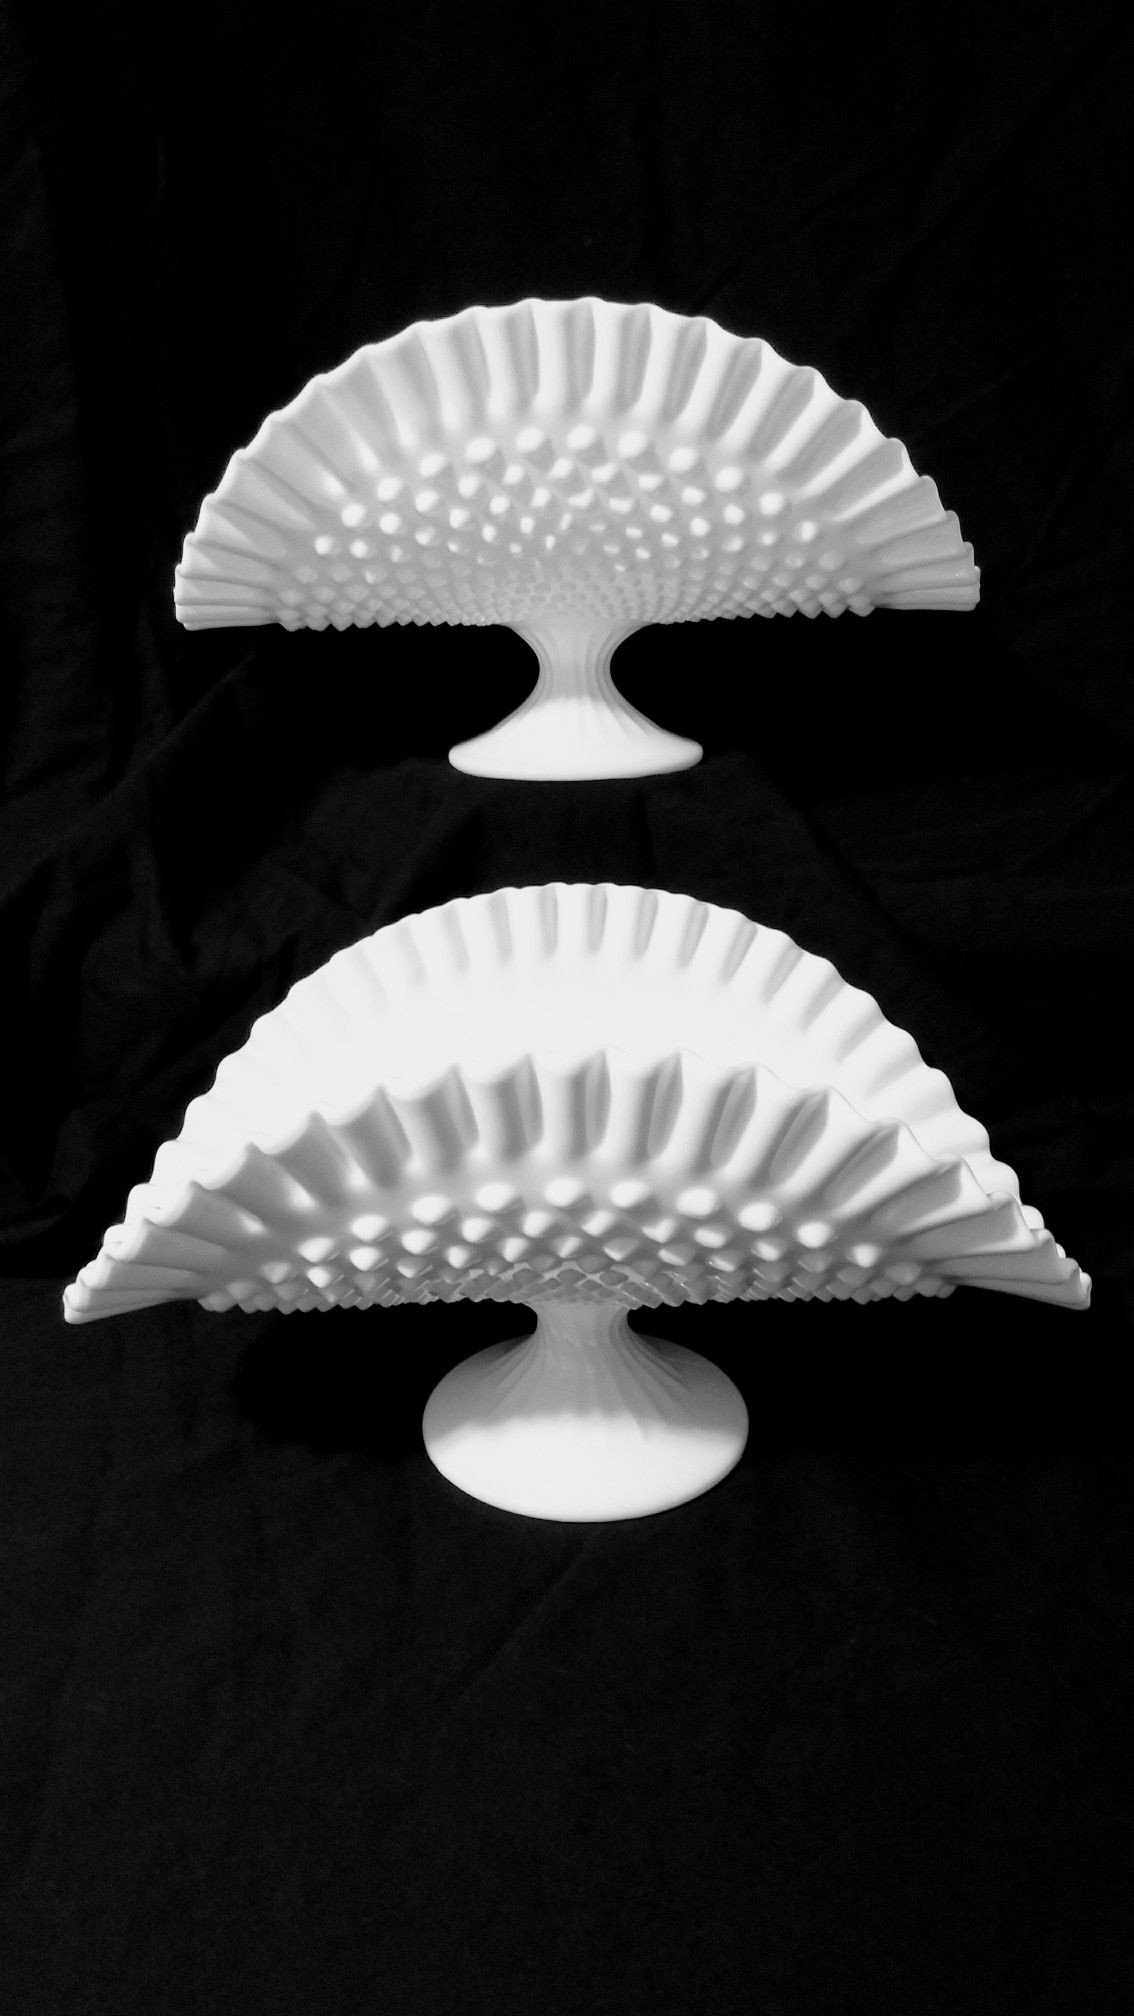 Antique Milk Glass Vases Of Fenton Hobnail Milk Glass Banana Bowls 6 1 4 Tall Heidis Regarding Fenton Hobnail Milk Glass Banana Bowls